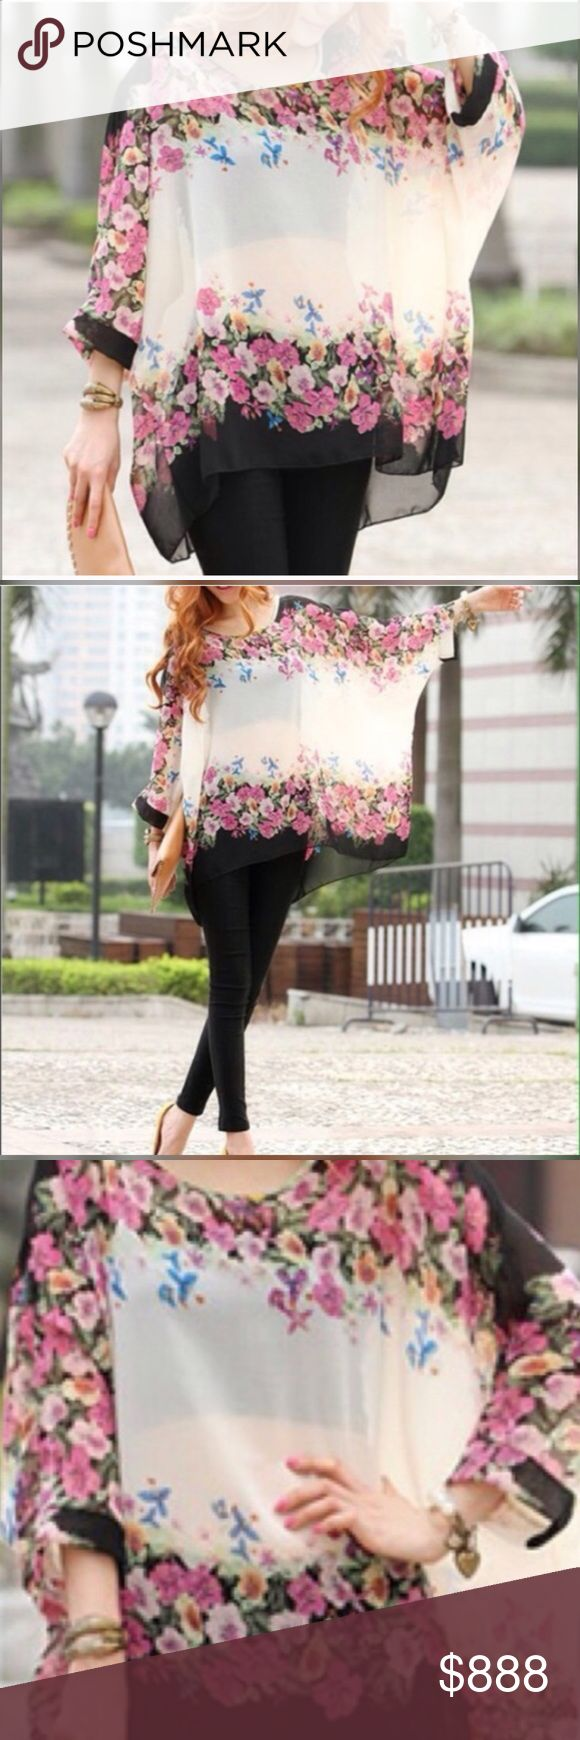 New batwing poncho tunics beautiful boho NWOT New still in manufactures plastic poncho floral very comfortable could easily be worn by a large or extra large new batwing poncho tunics beautiful boho. This is NWOT Retail. S1 Tops